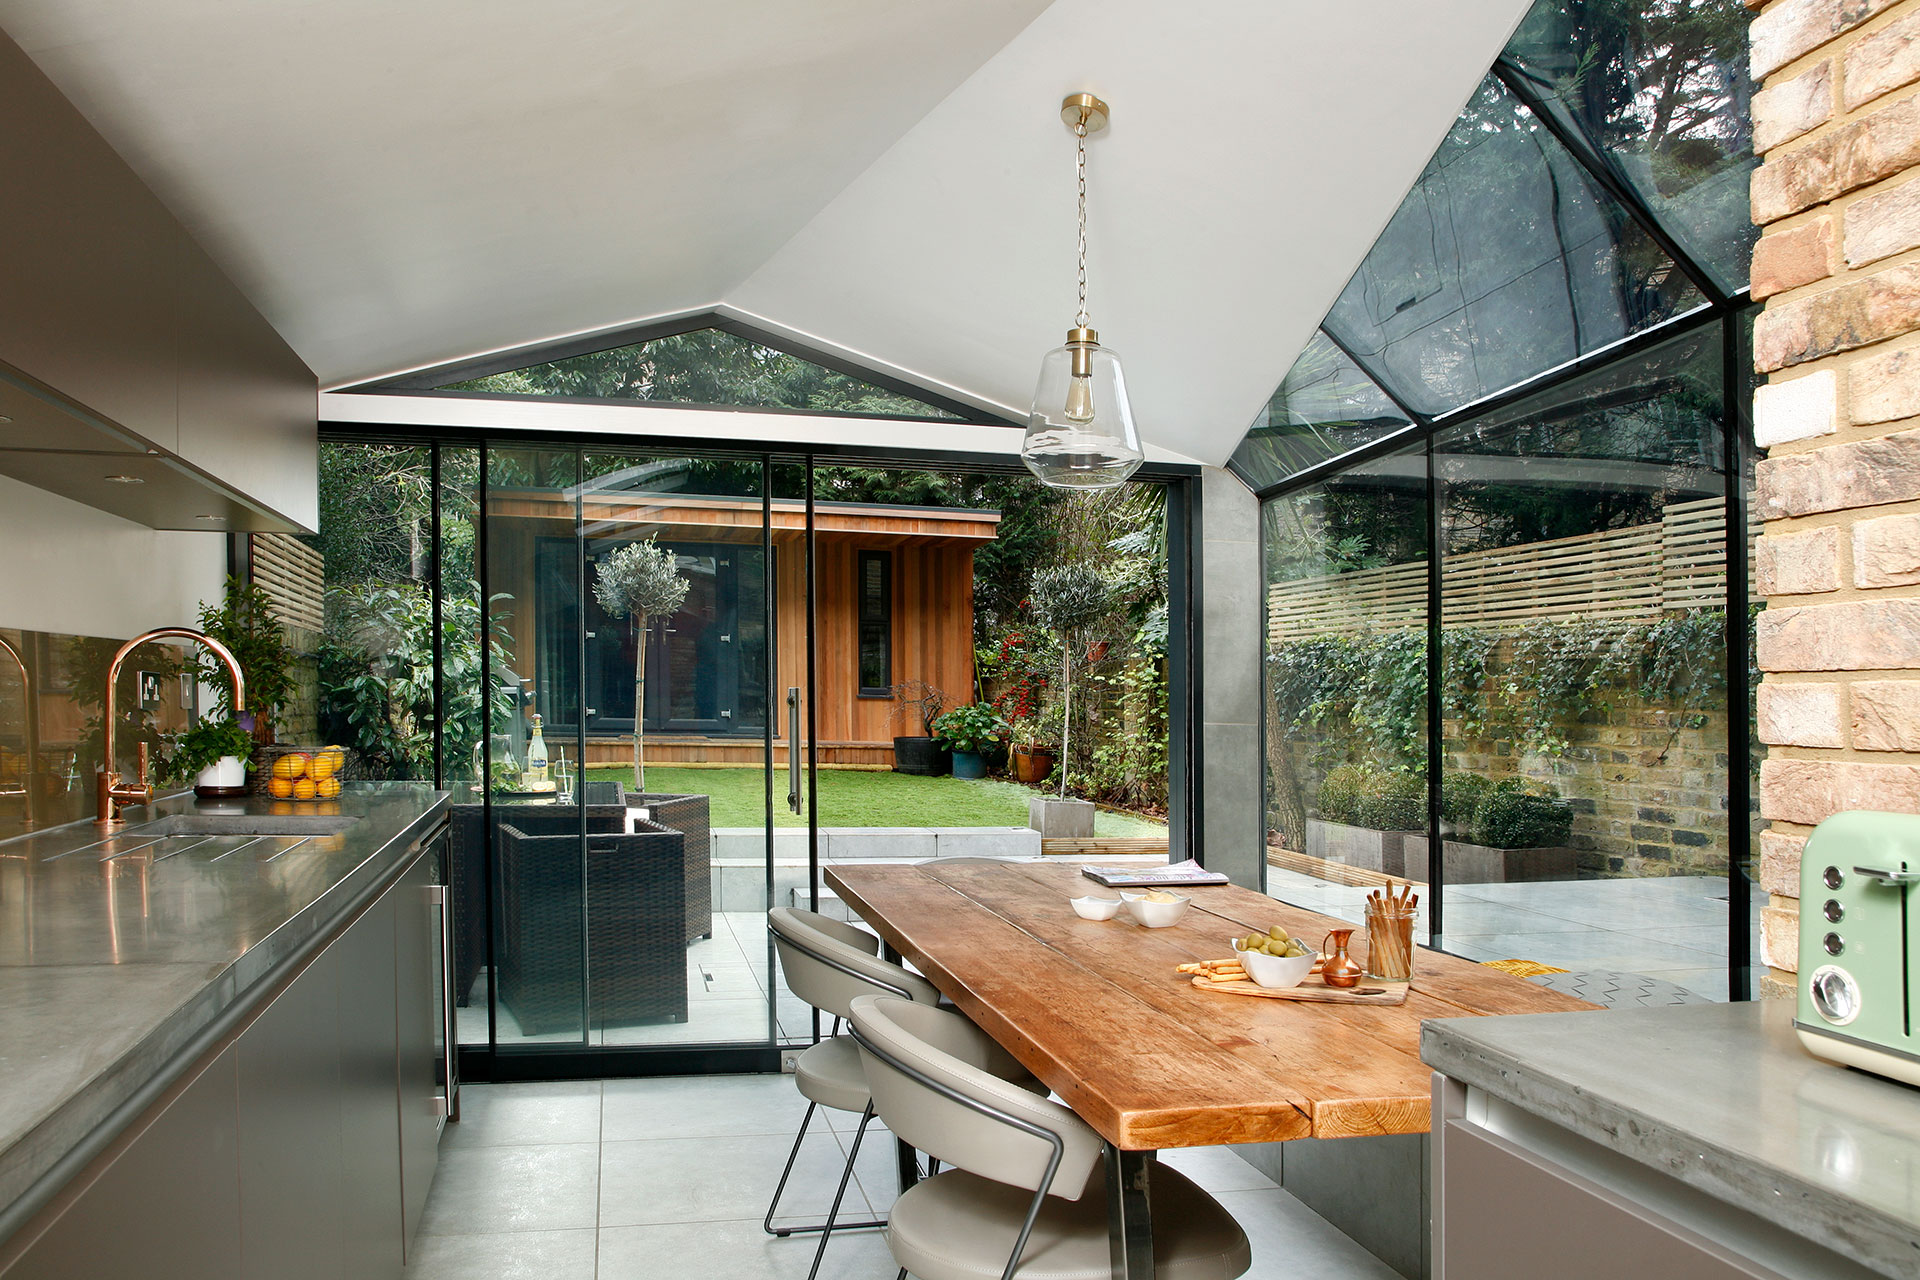 About The Frameless Glass Company